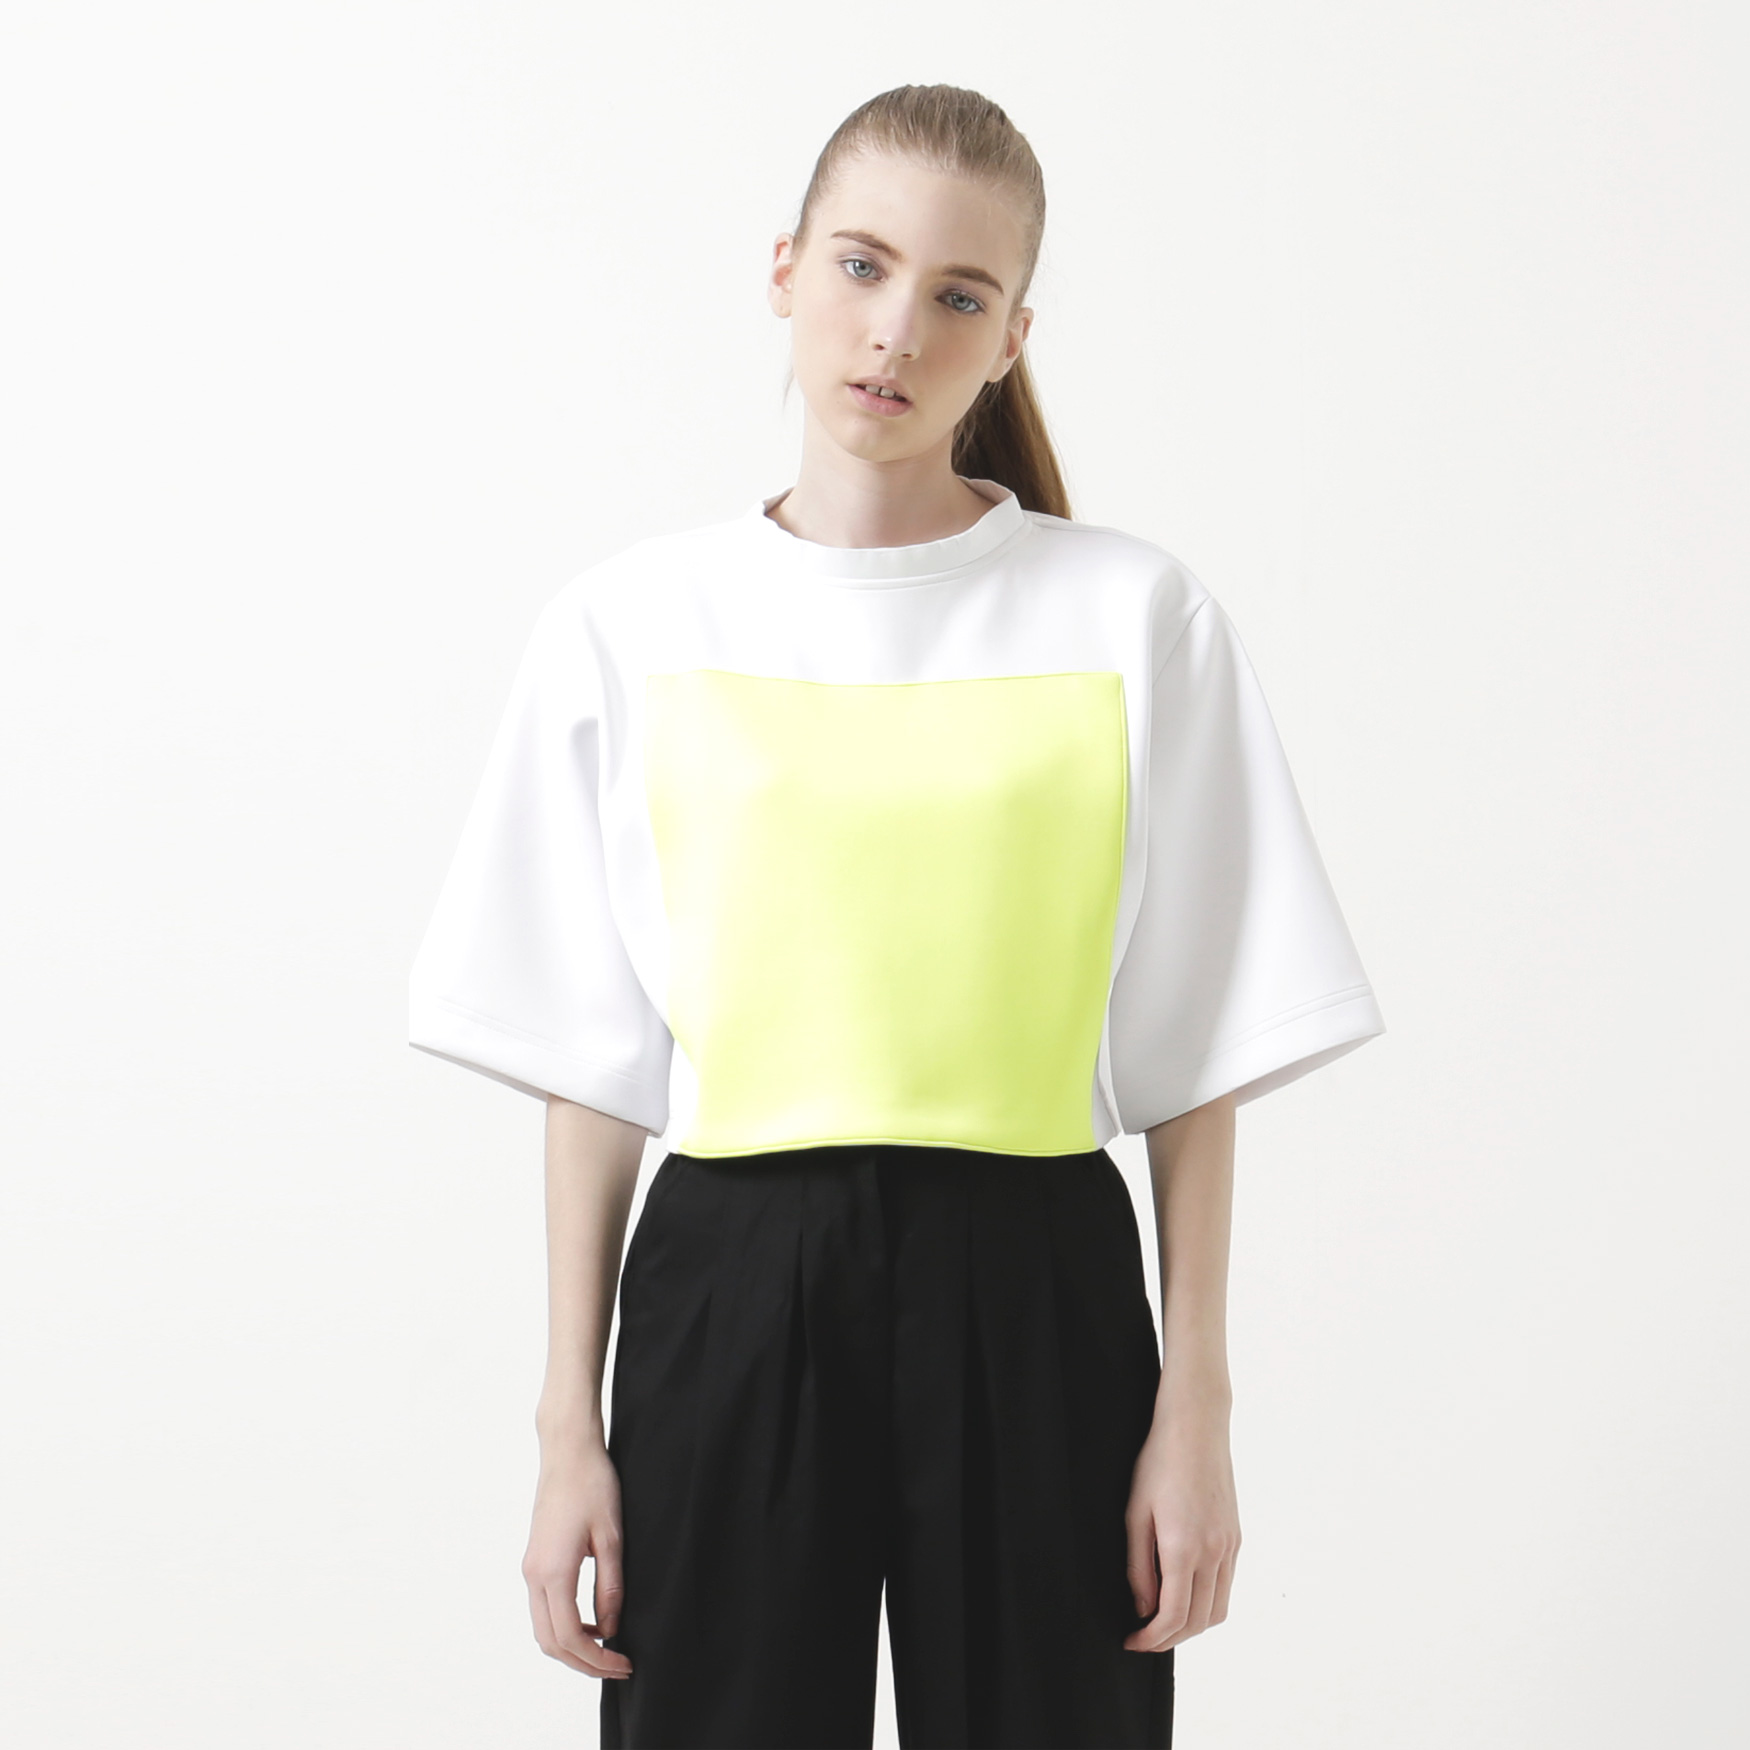 63b0c31ae7fad Spotlight Boxy Crop Top  Spotlight Boxy Crop Top ...